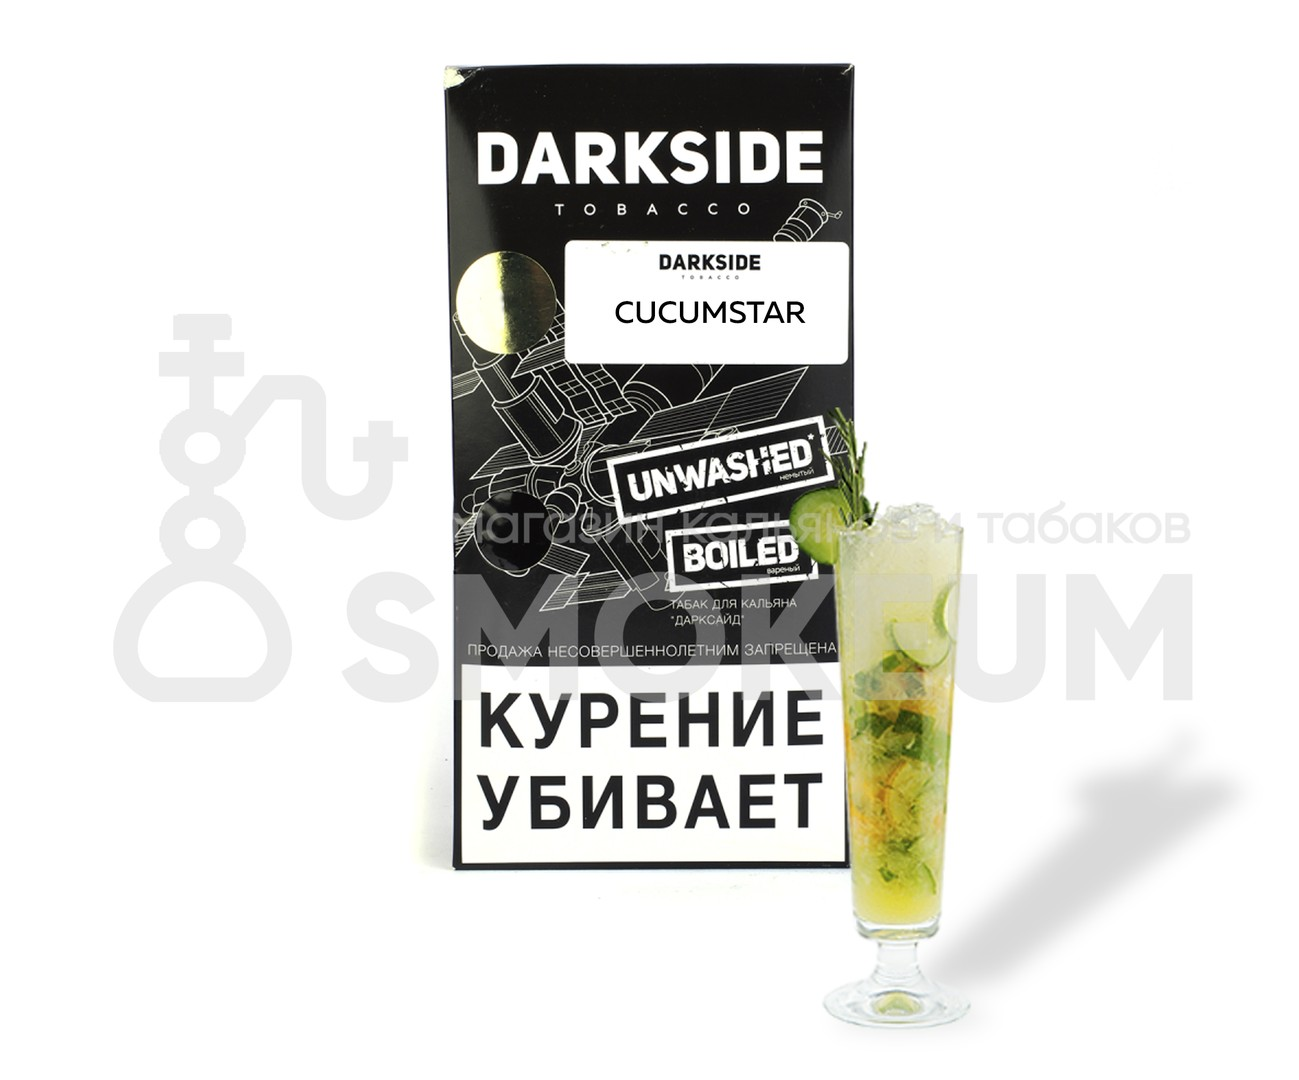 Табак Darkside (Soft) - Cucumstar (Огурец) 250 гр